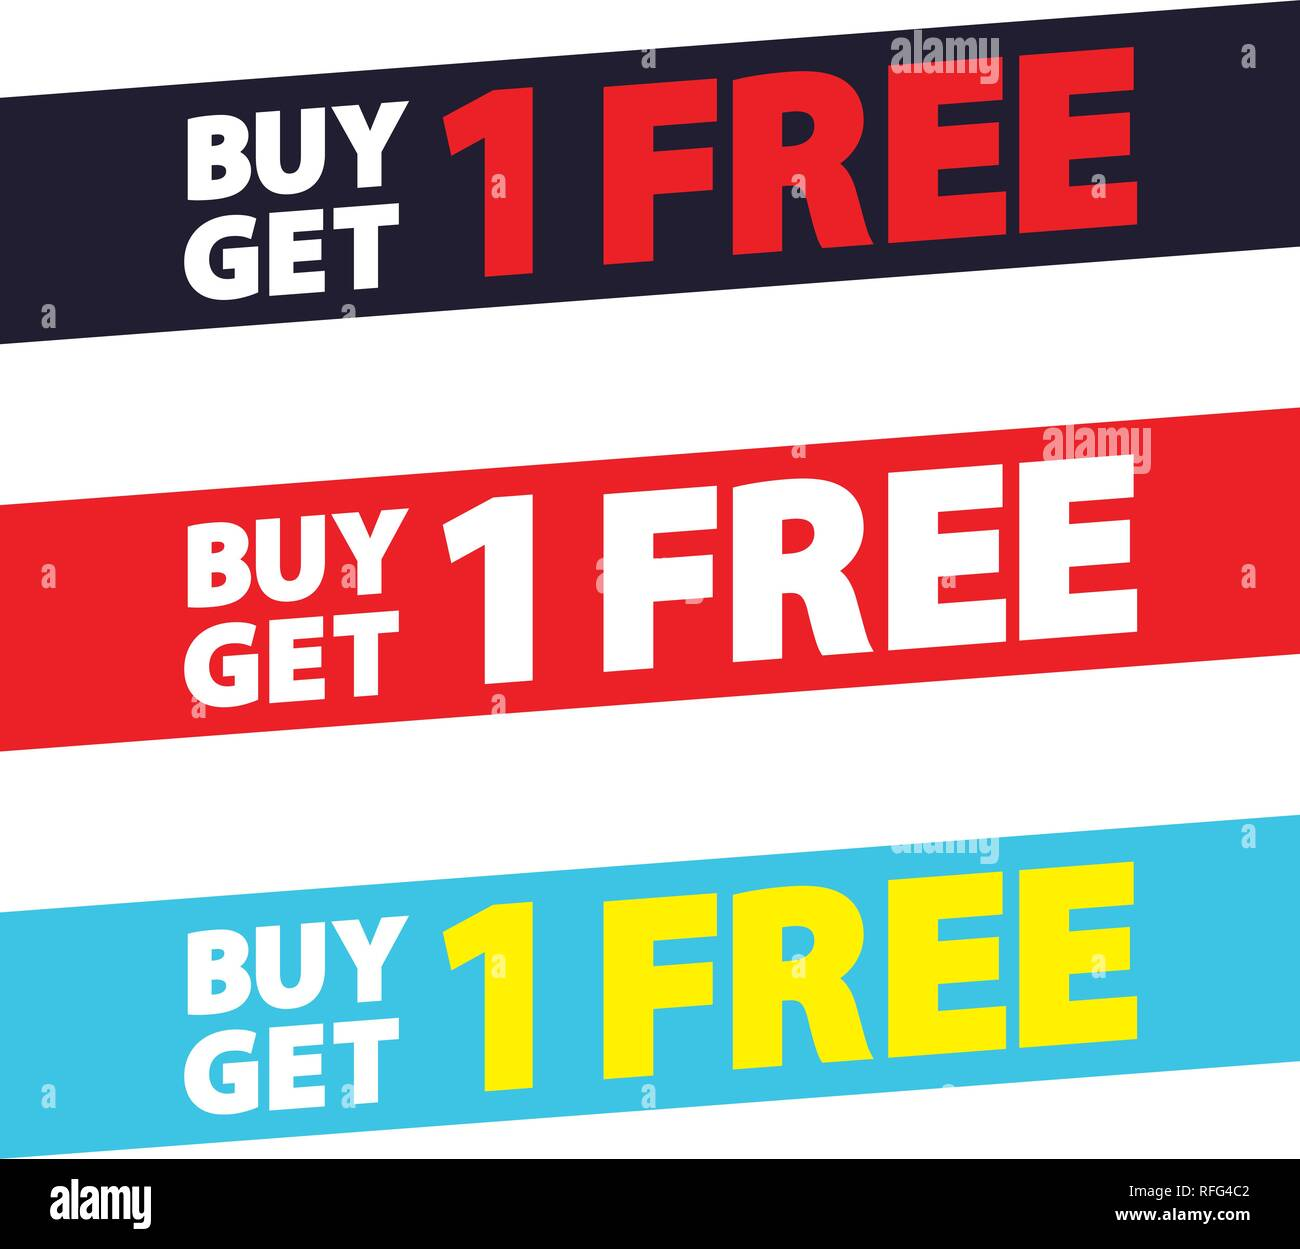 Buy Get 1 Free tag design for banner or poster  Sale and Discounts